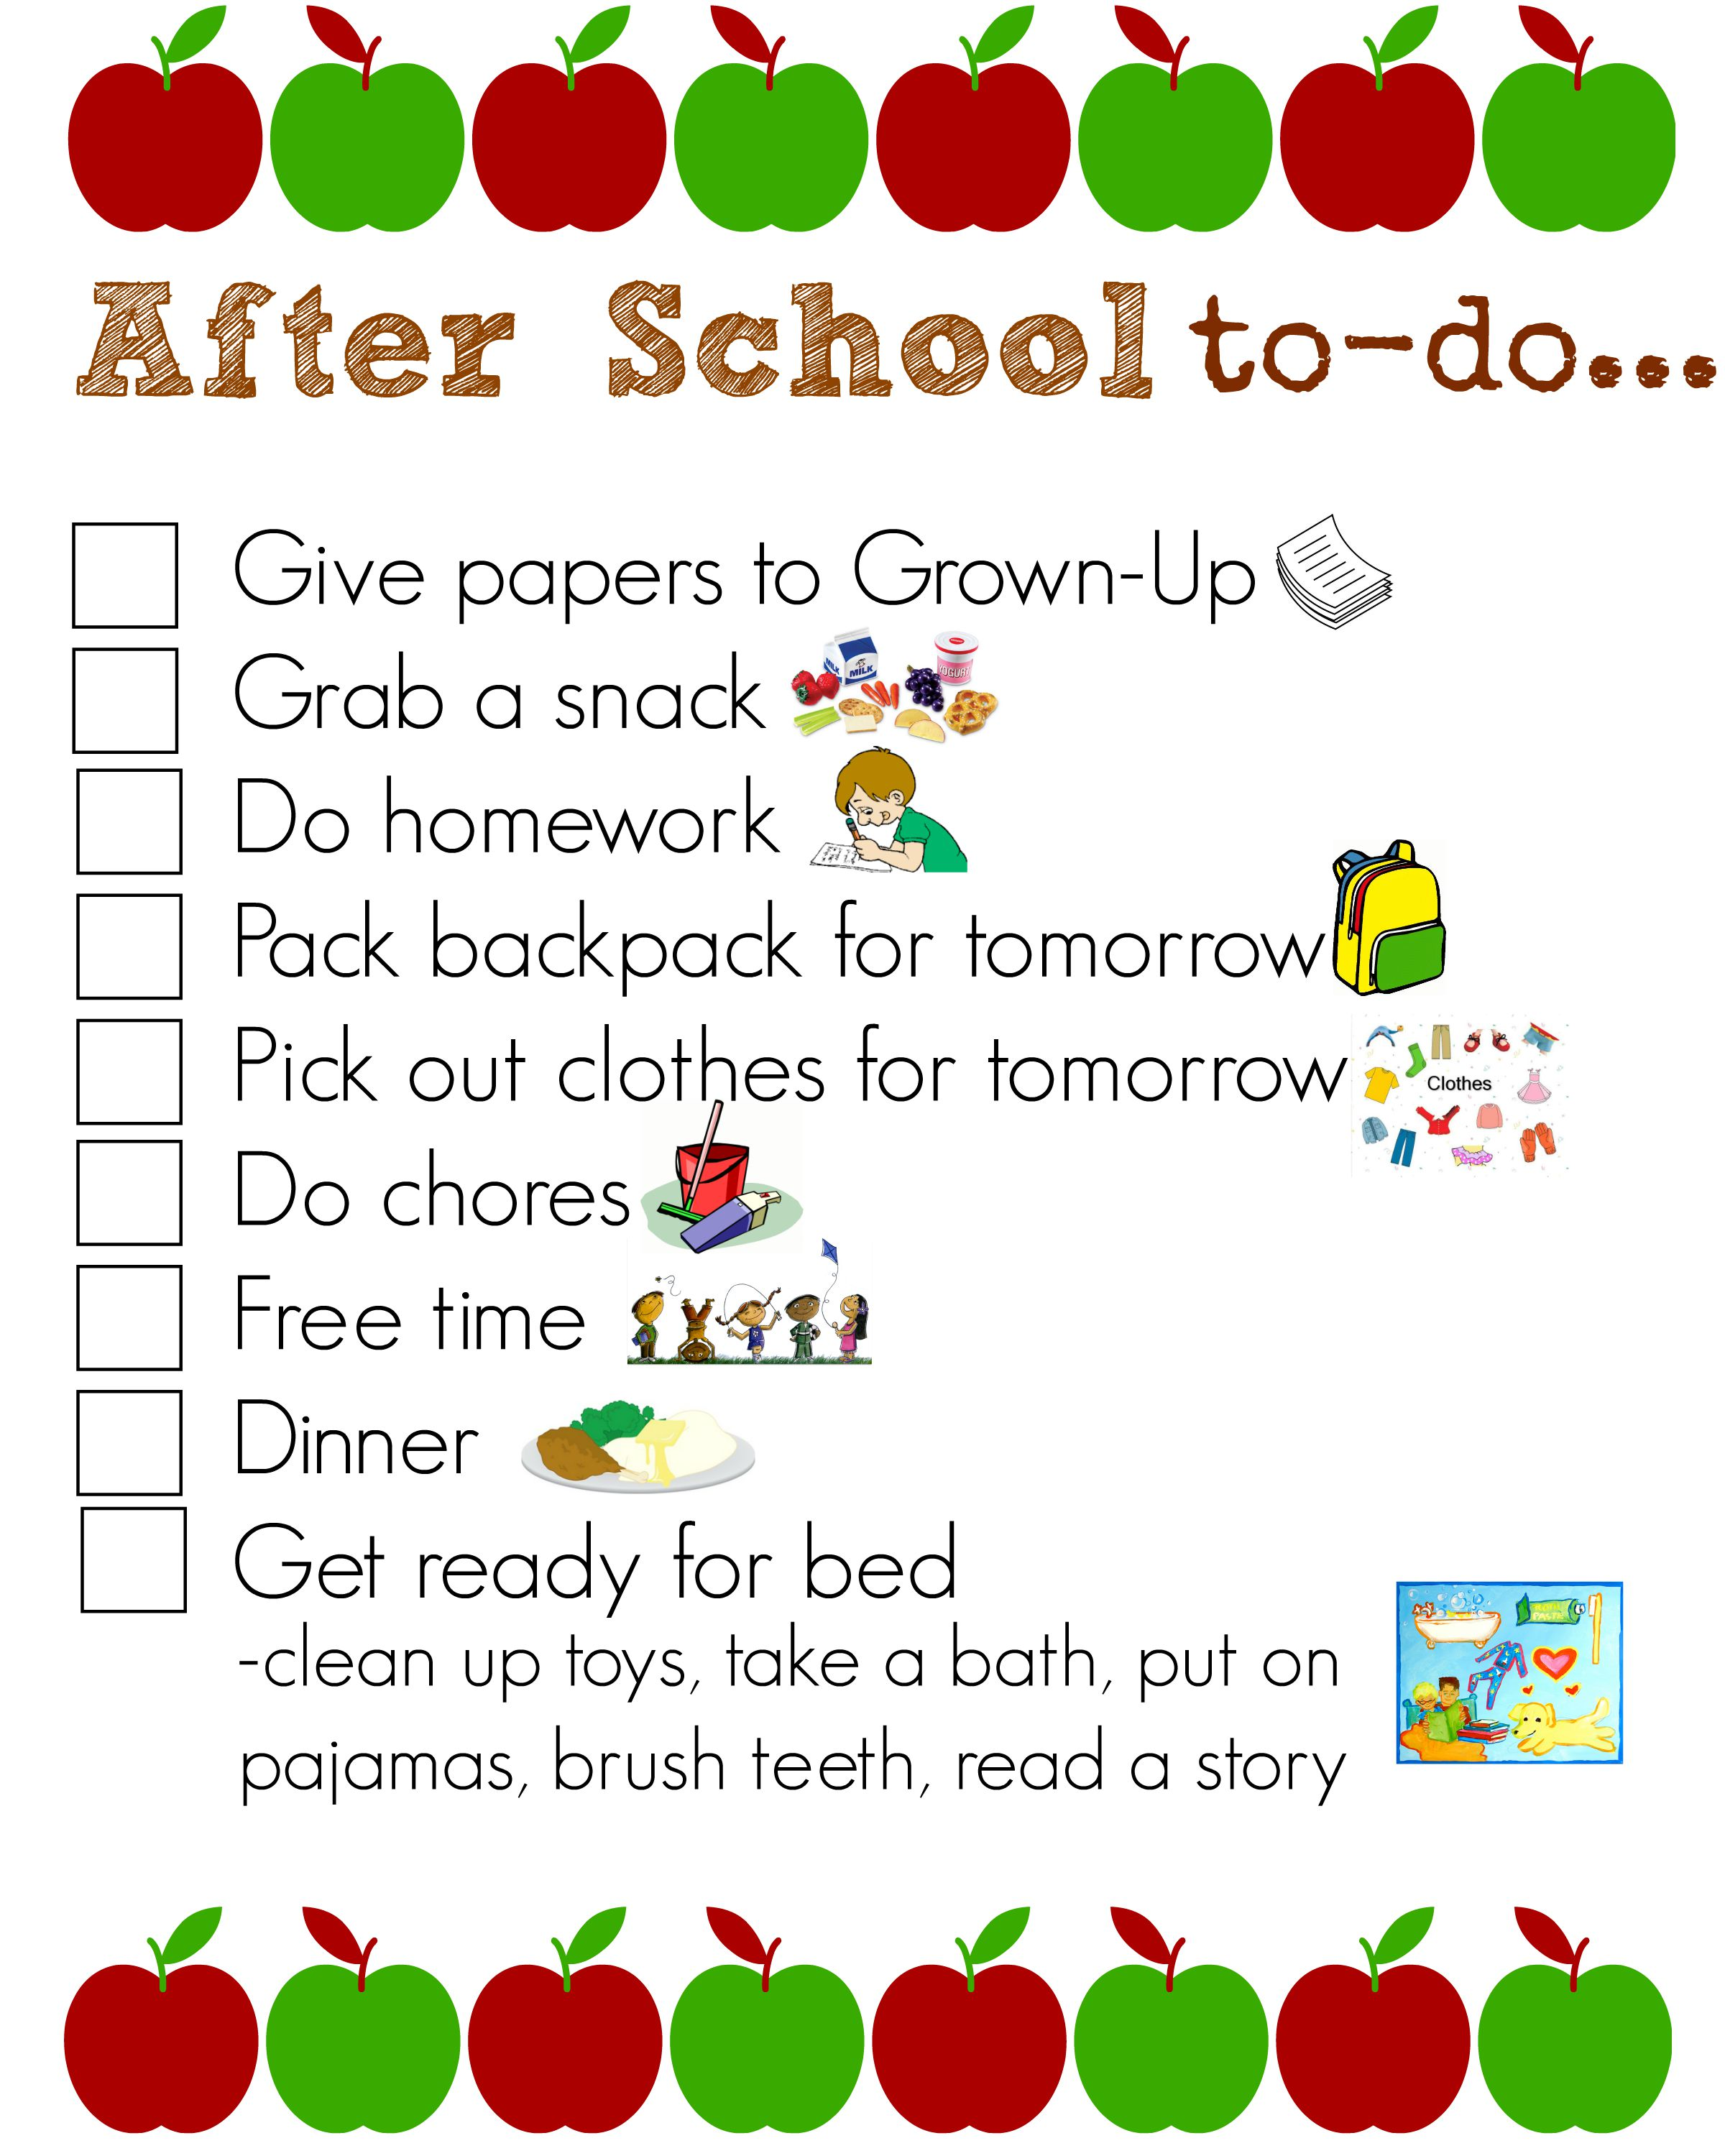 photo regarding After School Schedule Printable called Cost-free Once College or university Schedule Printable Mandys Recipe Box